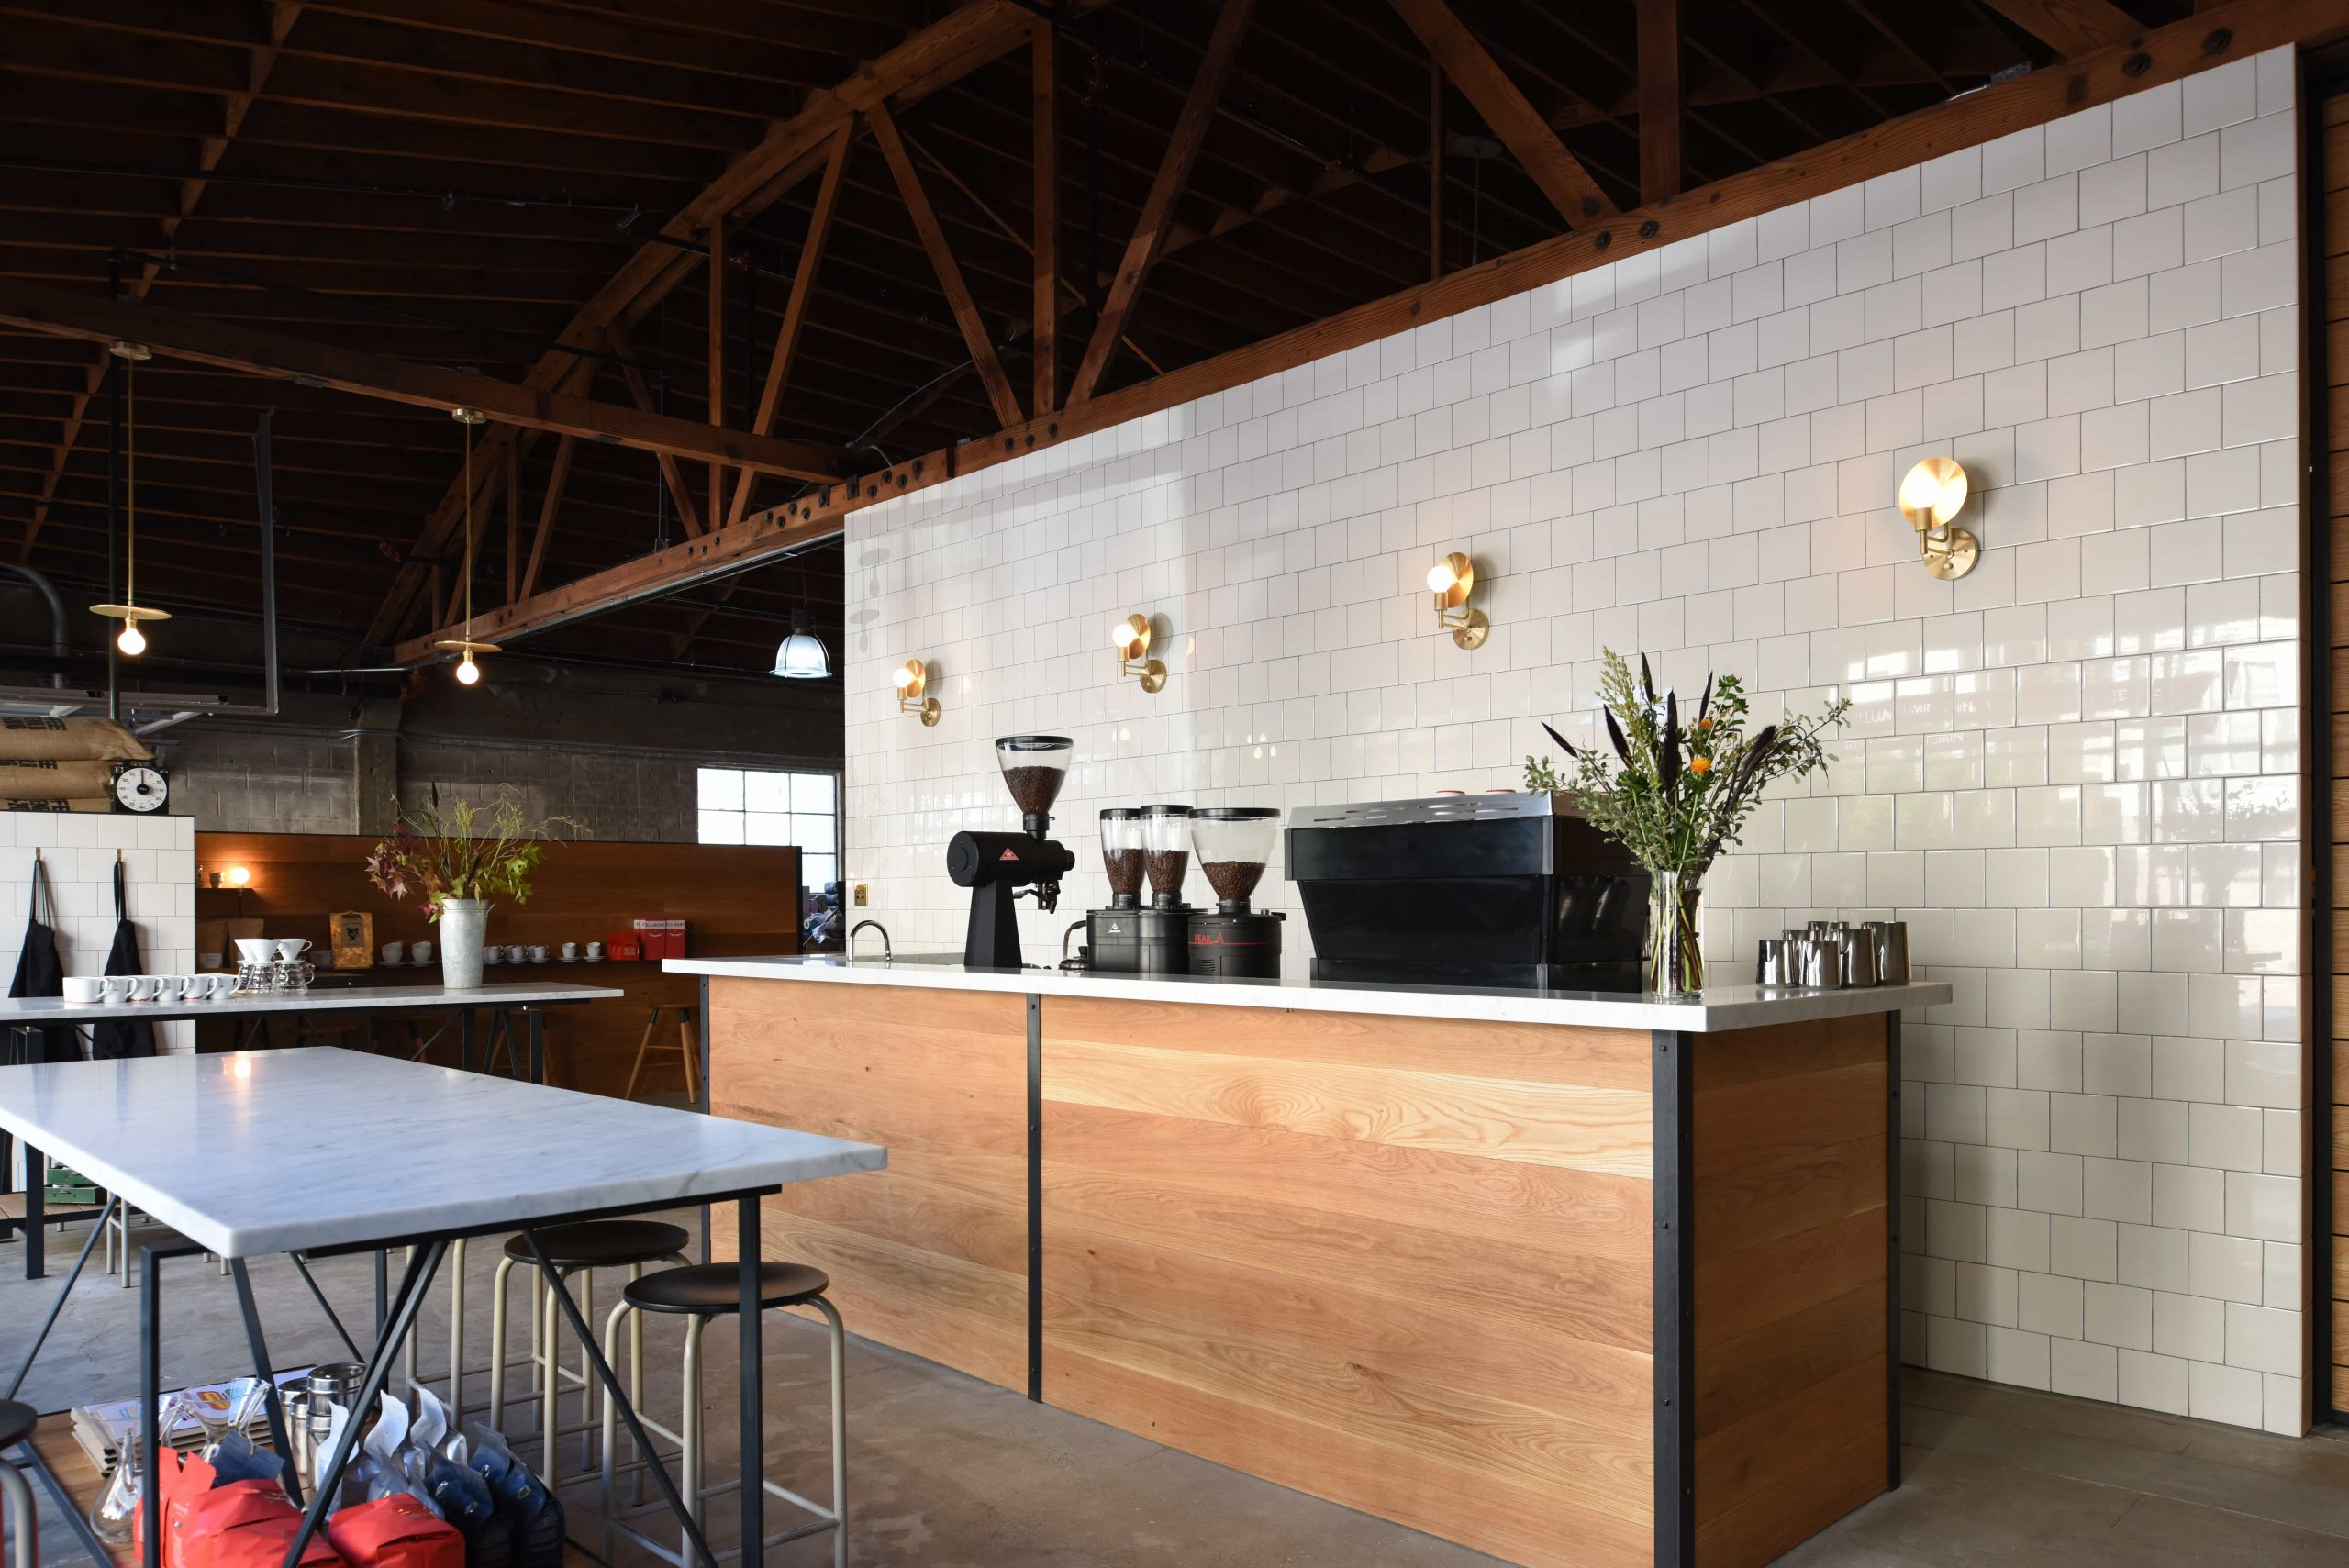 Intelligentsia Coffee Opens Renovated San Francisco Roasting Works And New Training Lab